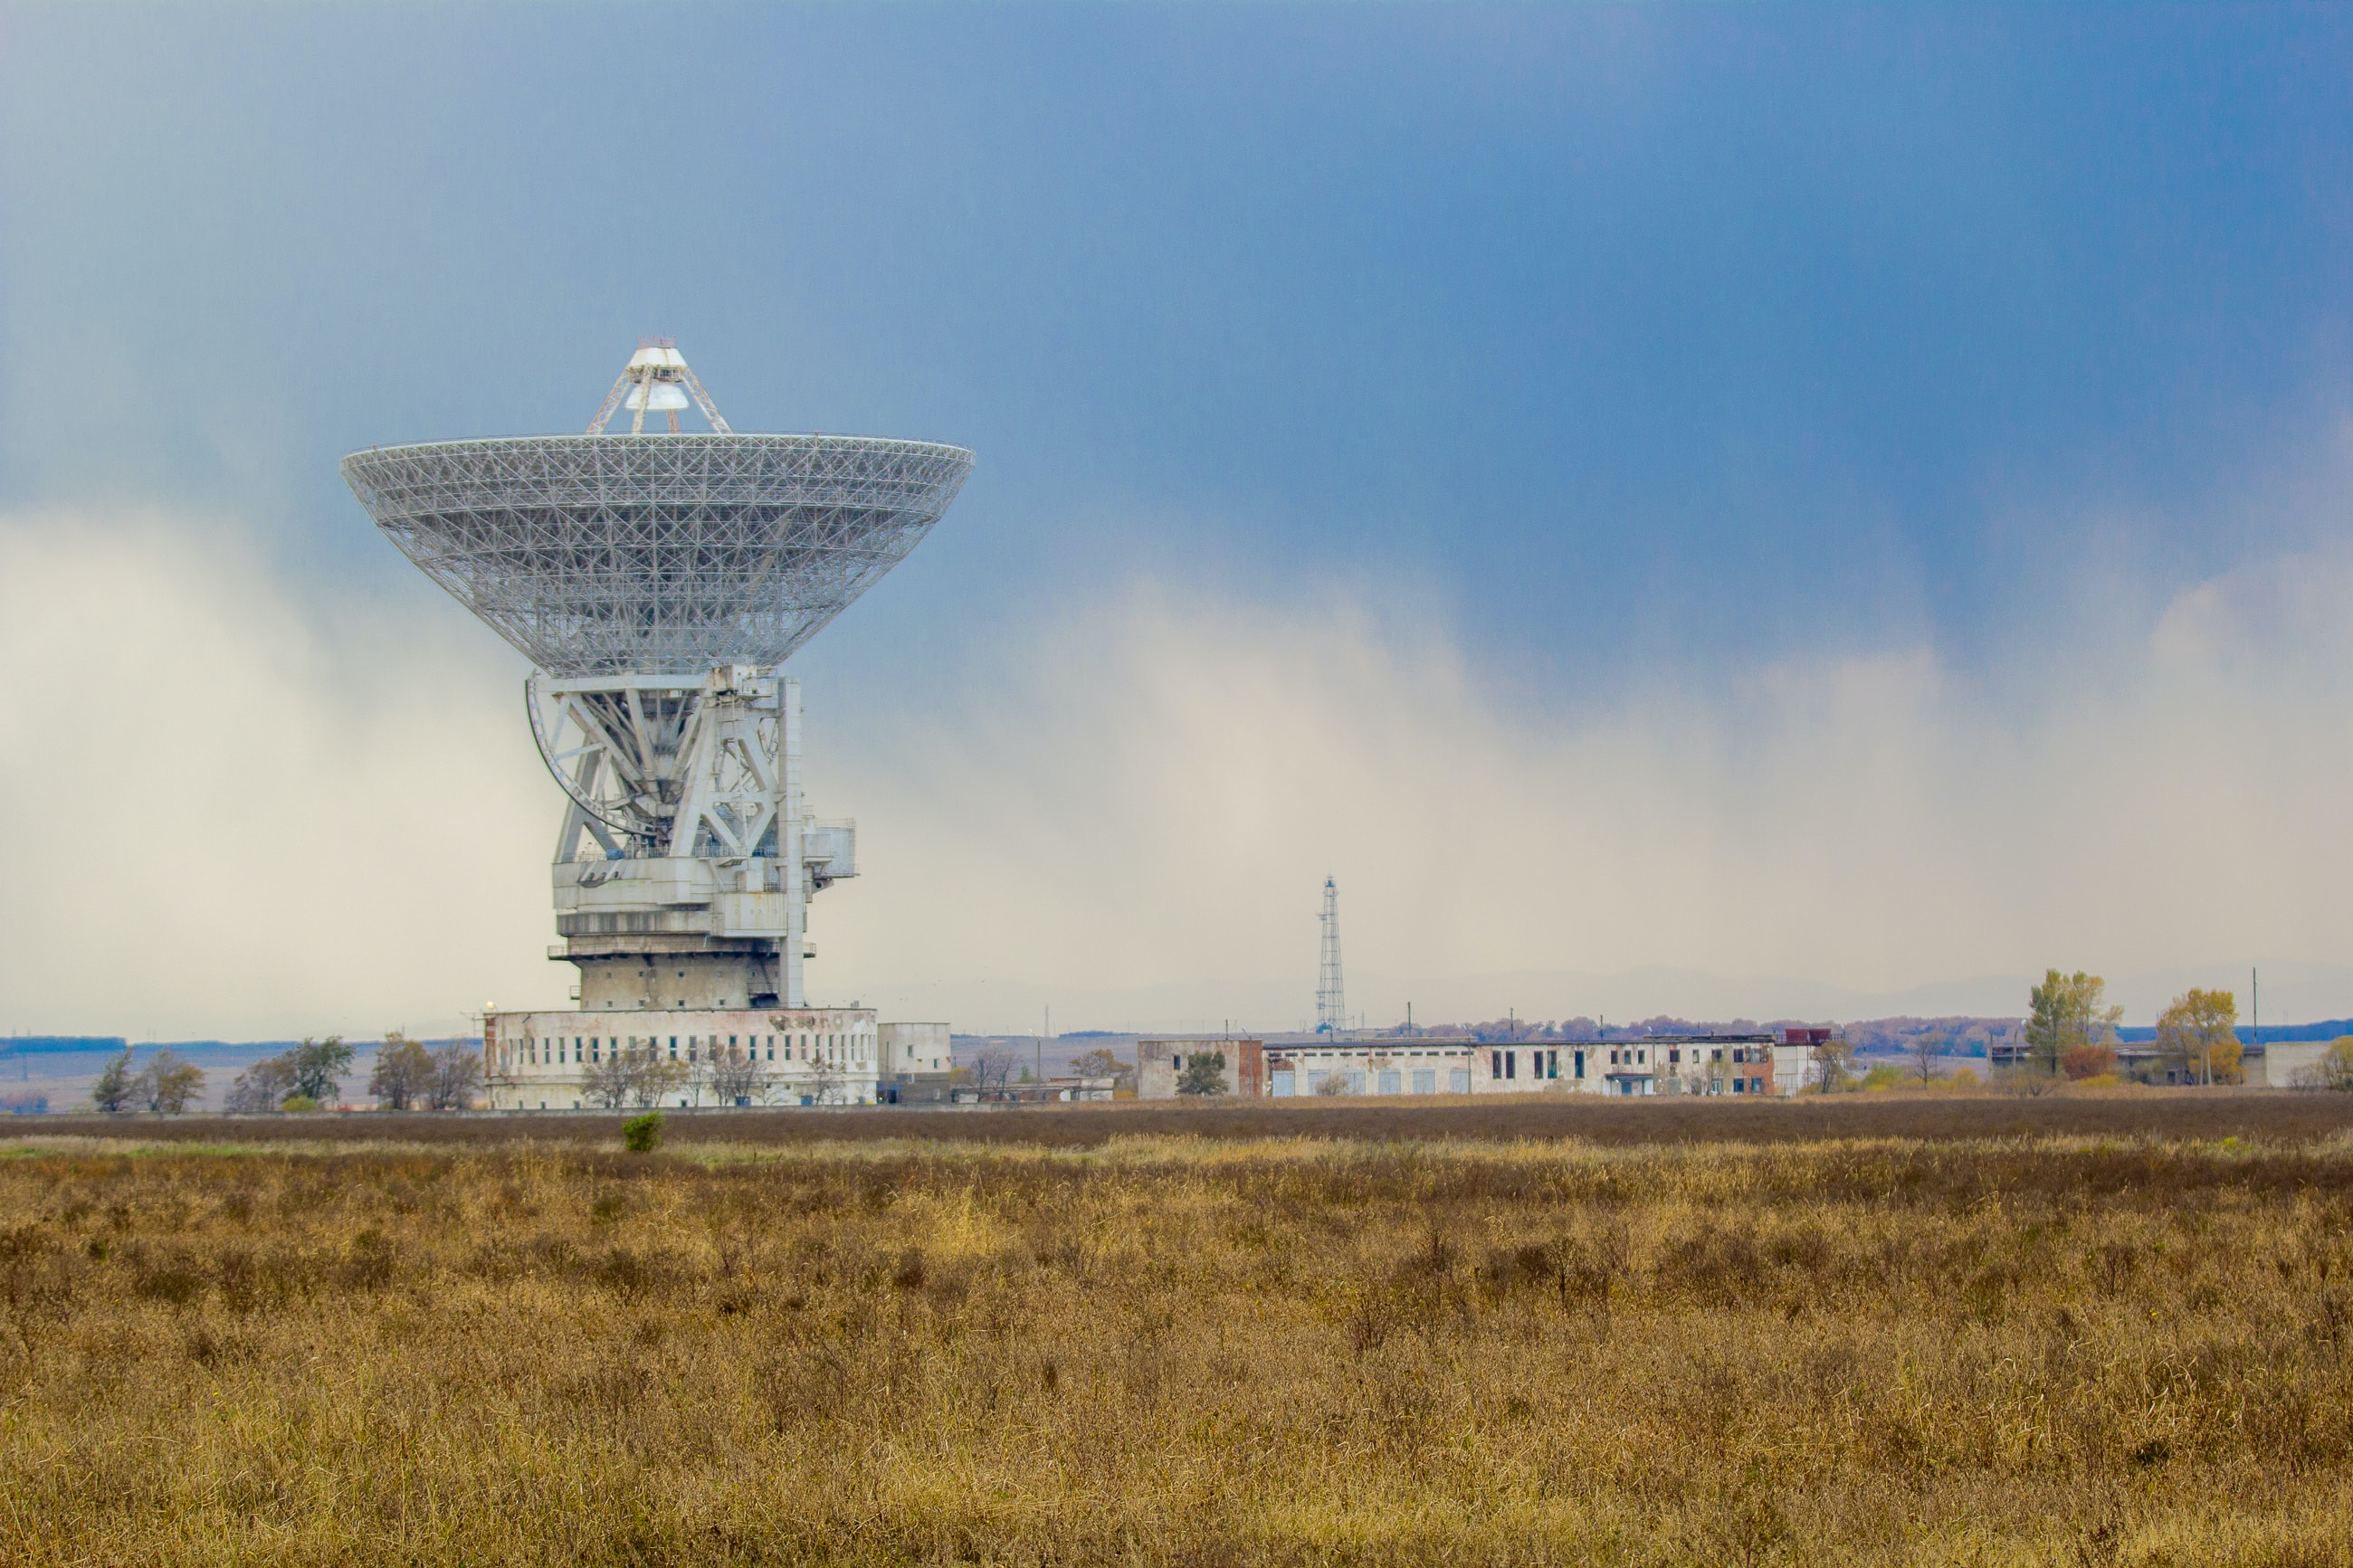 Satellite among technological buildings in a field